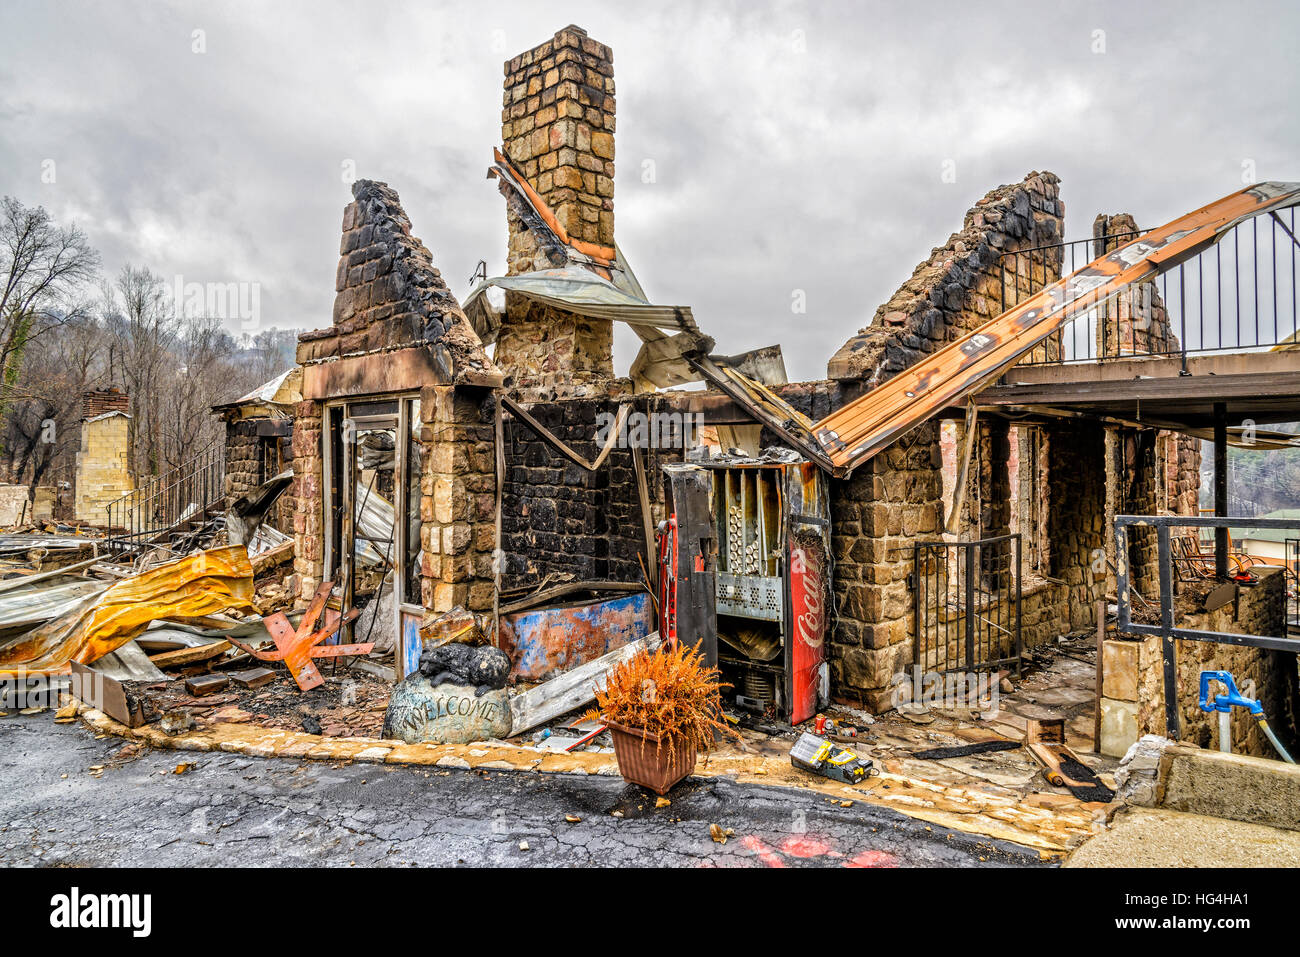 GATLINBURG, TENNESSEE/USA - DECEMBER 14, 2016: Only the shell of a motel office remains after being destroyed by - Stock Image